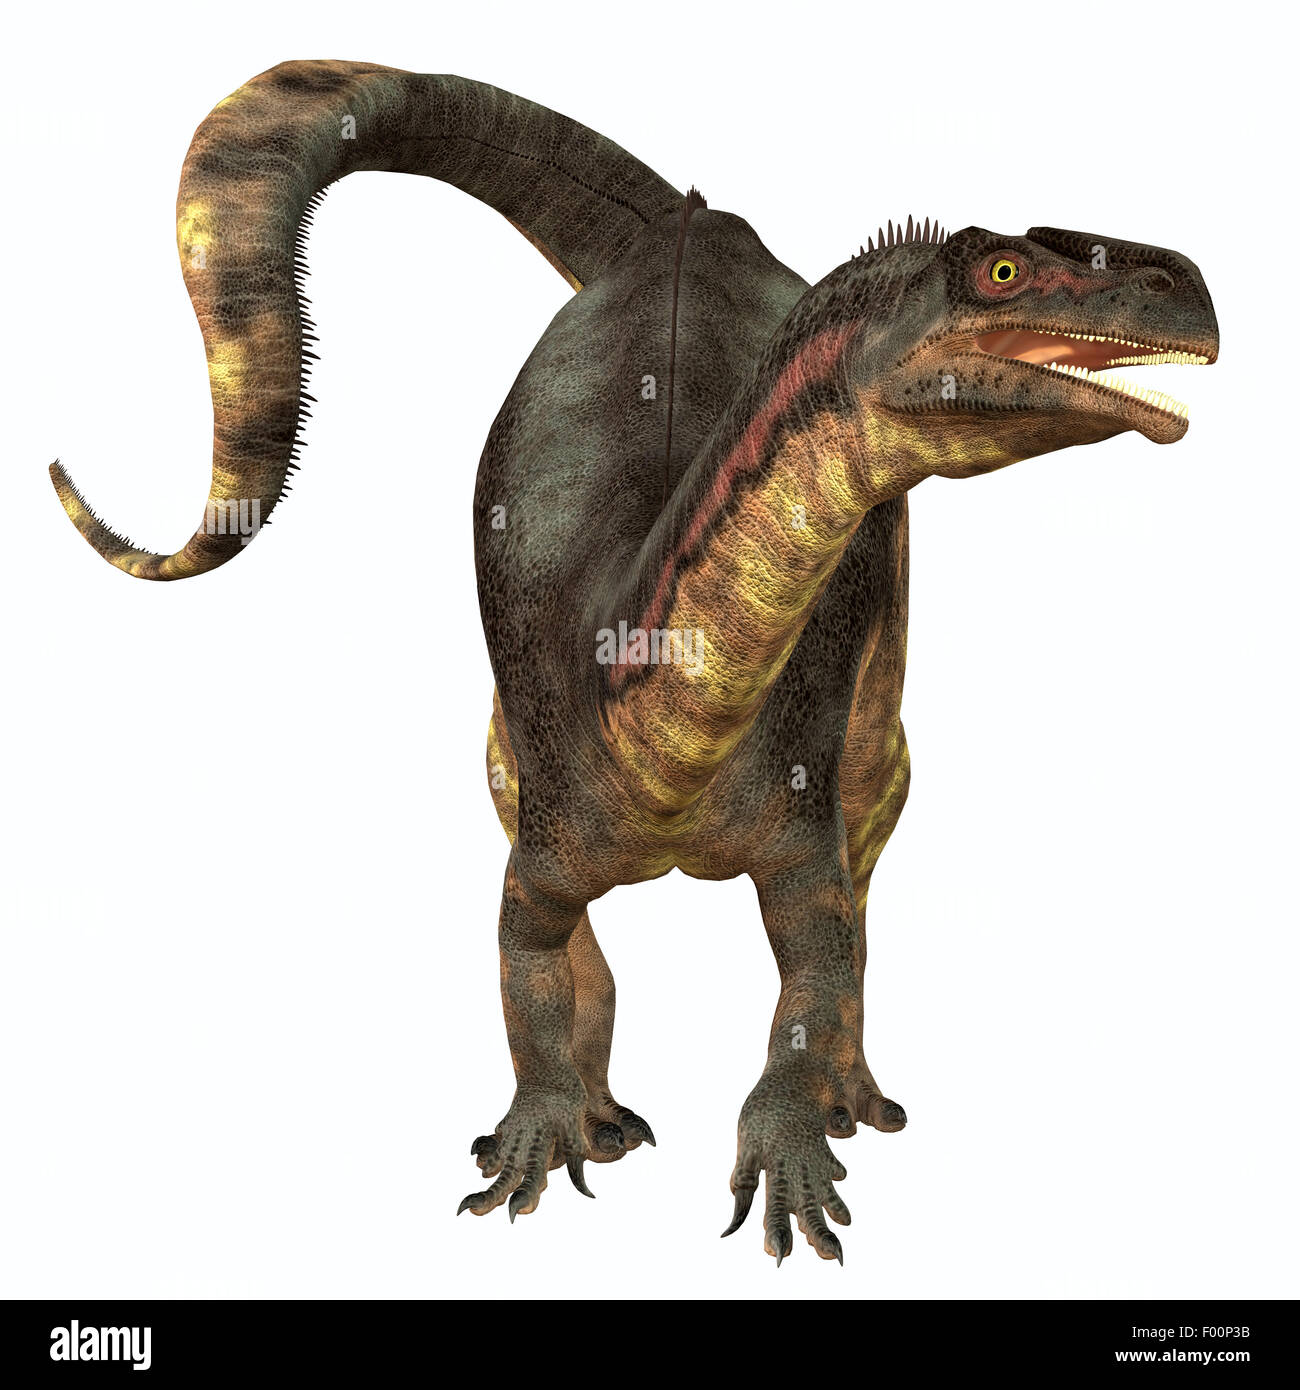 Plateosaurus was a prosauropod herbivorous dinosaur that lived in the Triassic Age of Europe. - Stock Image